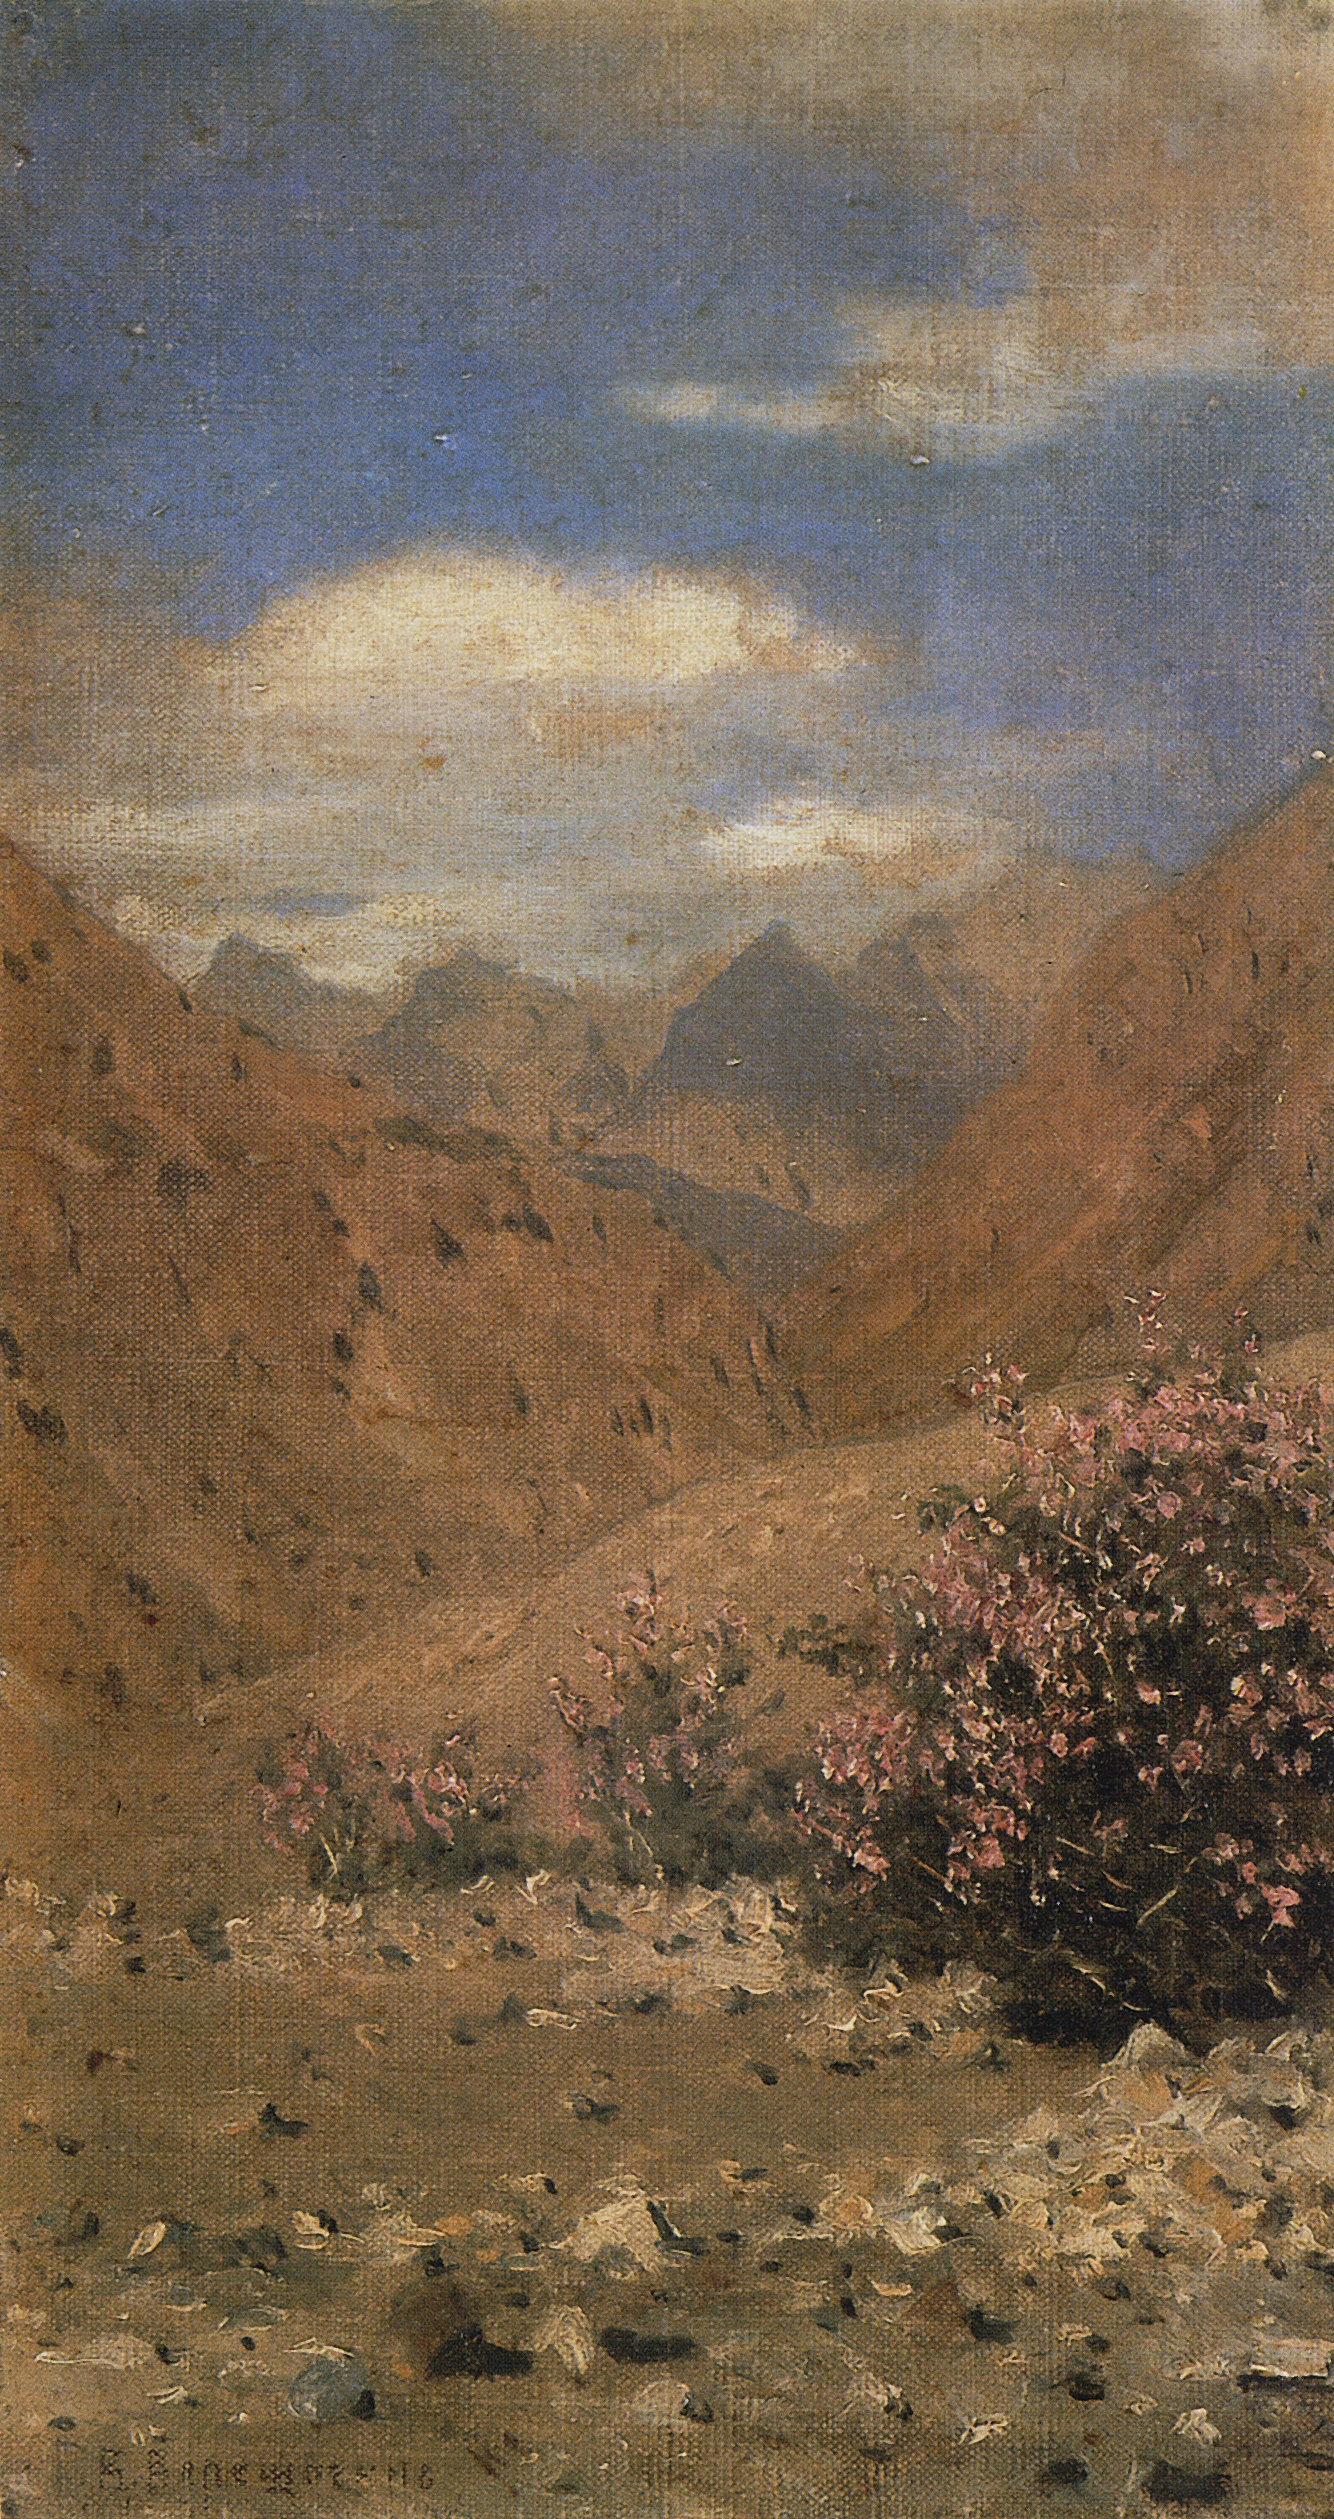 Vasily Vereshchagin. Roses in Ladakh. Etude